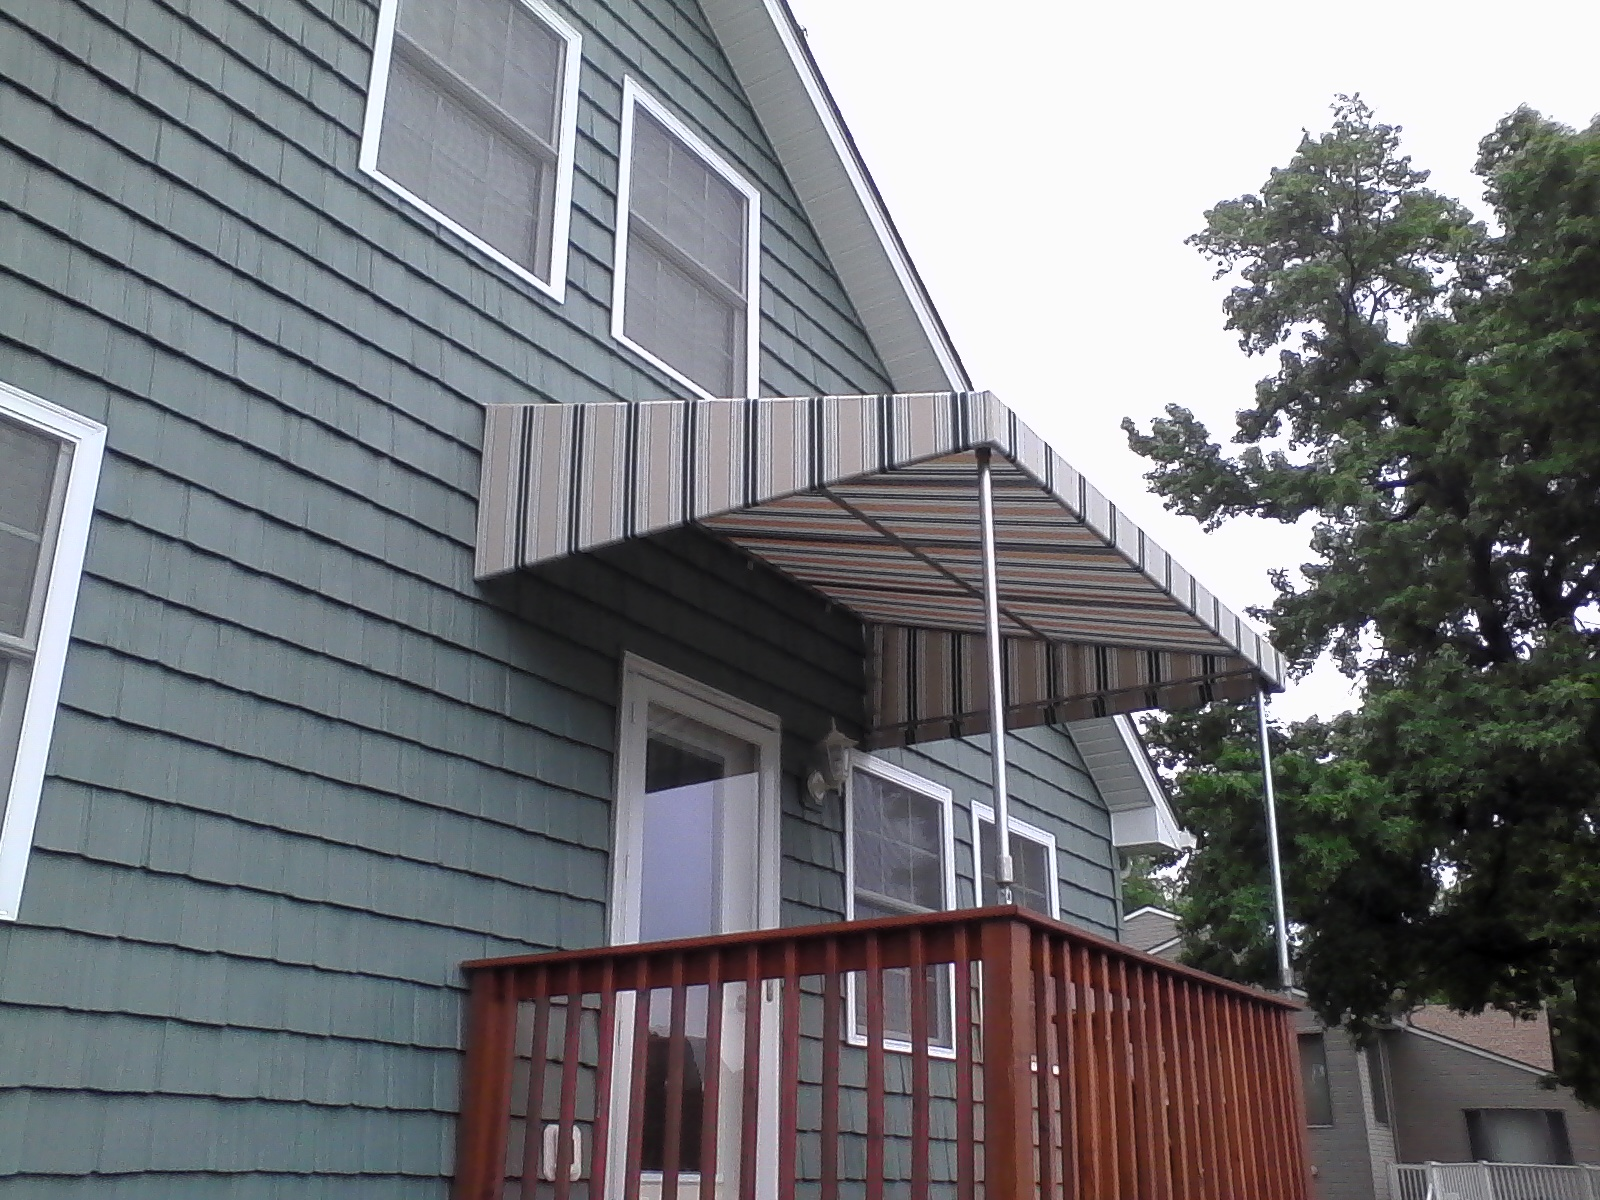 Residential-Deck-Awning